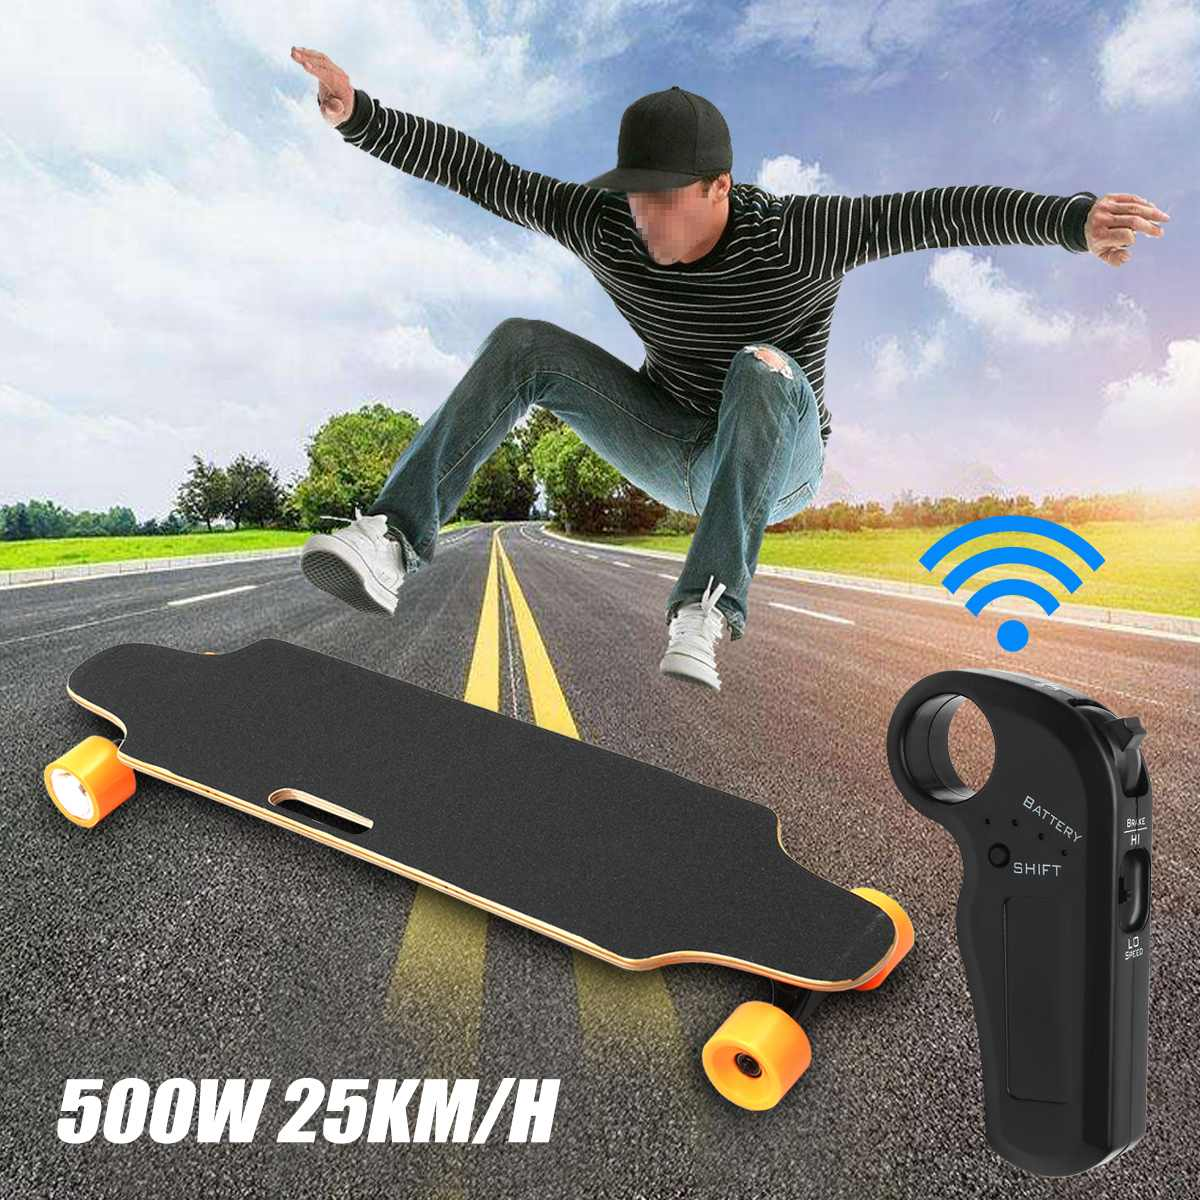 Electric Scooter Dual-motor 25km/h 500W Four Wheels Scooter Hoverboard Wireless Remote Control Small Fish Plate Skate Board